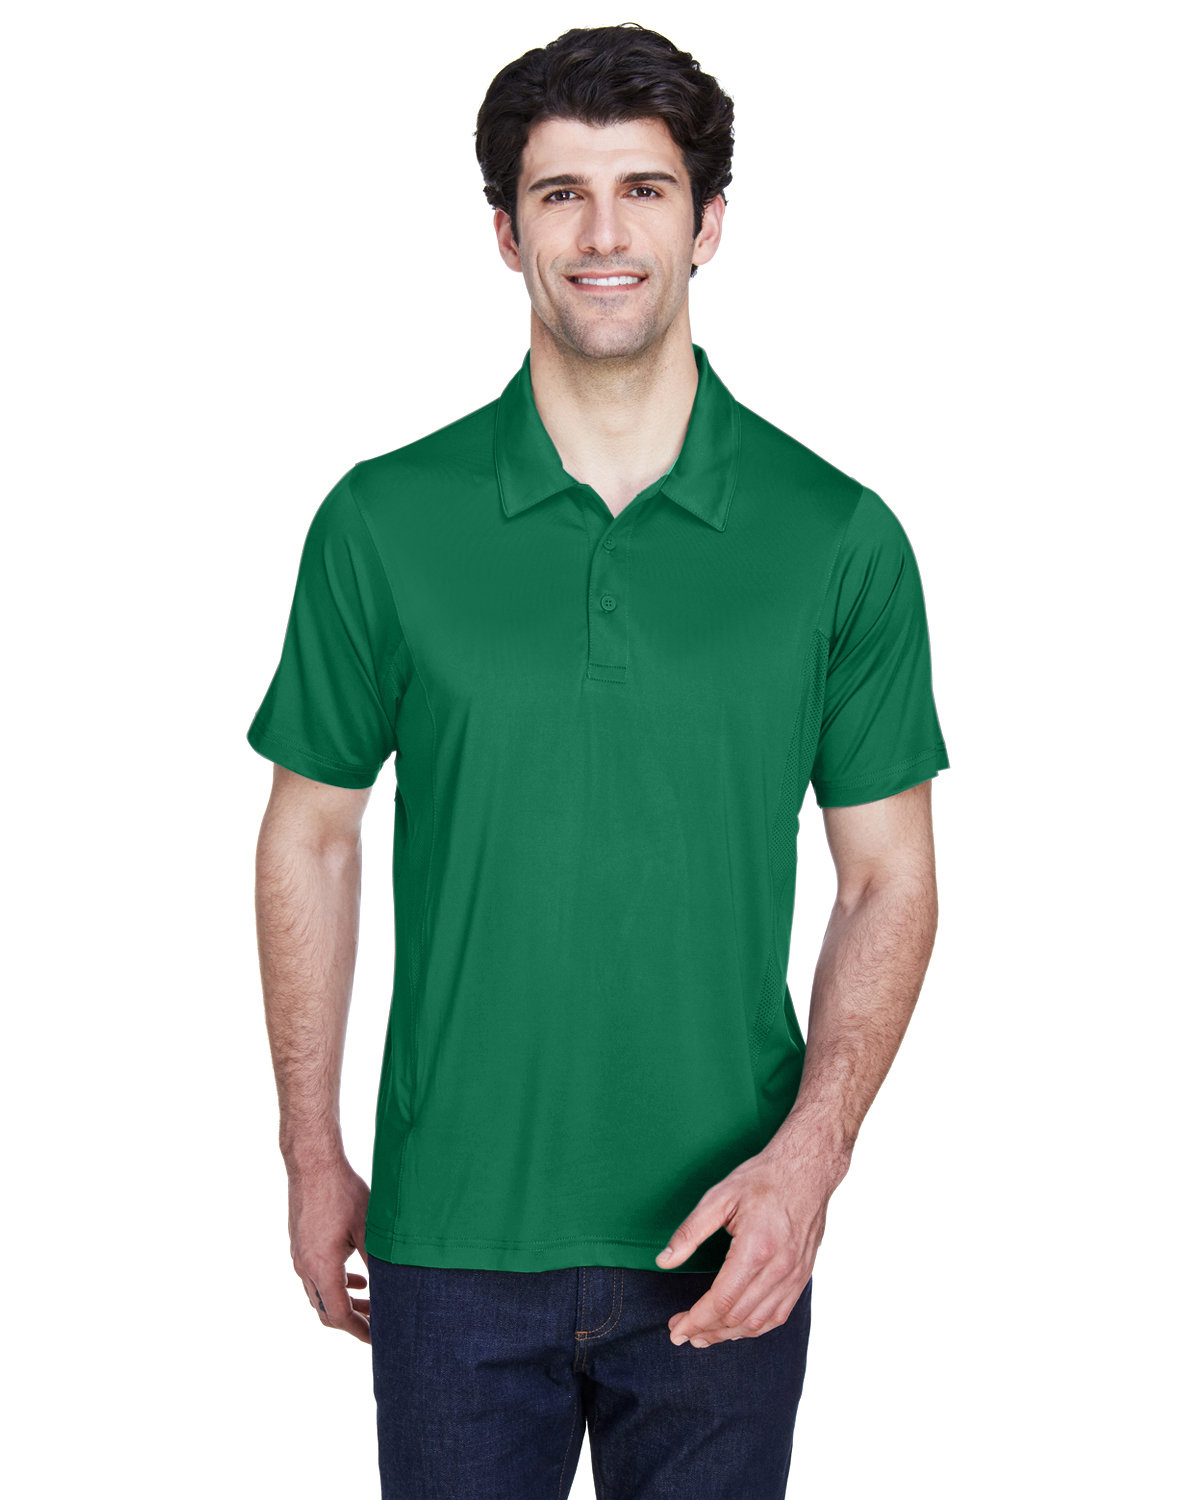 Team 365 Men's Charger Performance Polo SPORT KELLY